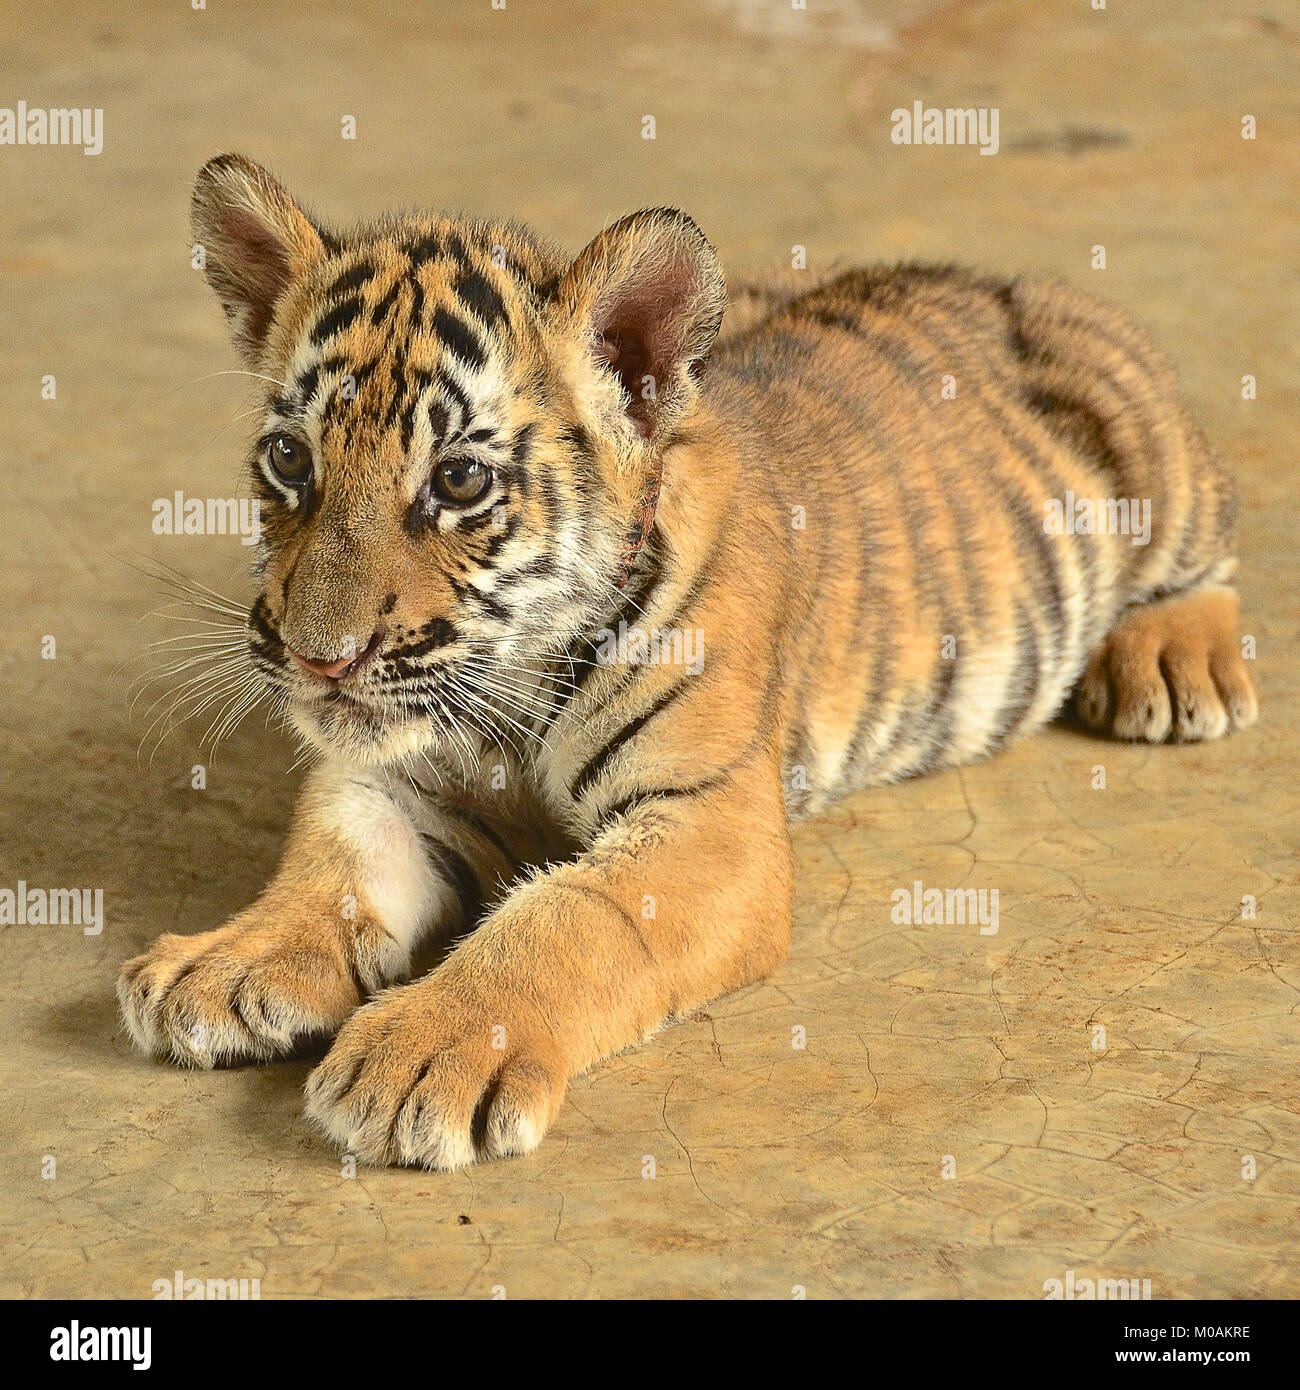 Zoo Animal Cute Tiger Cub Bengal Tiger High Resolution Stock Photography And Images Alamy